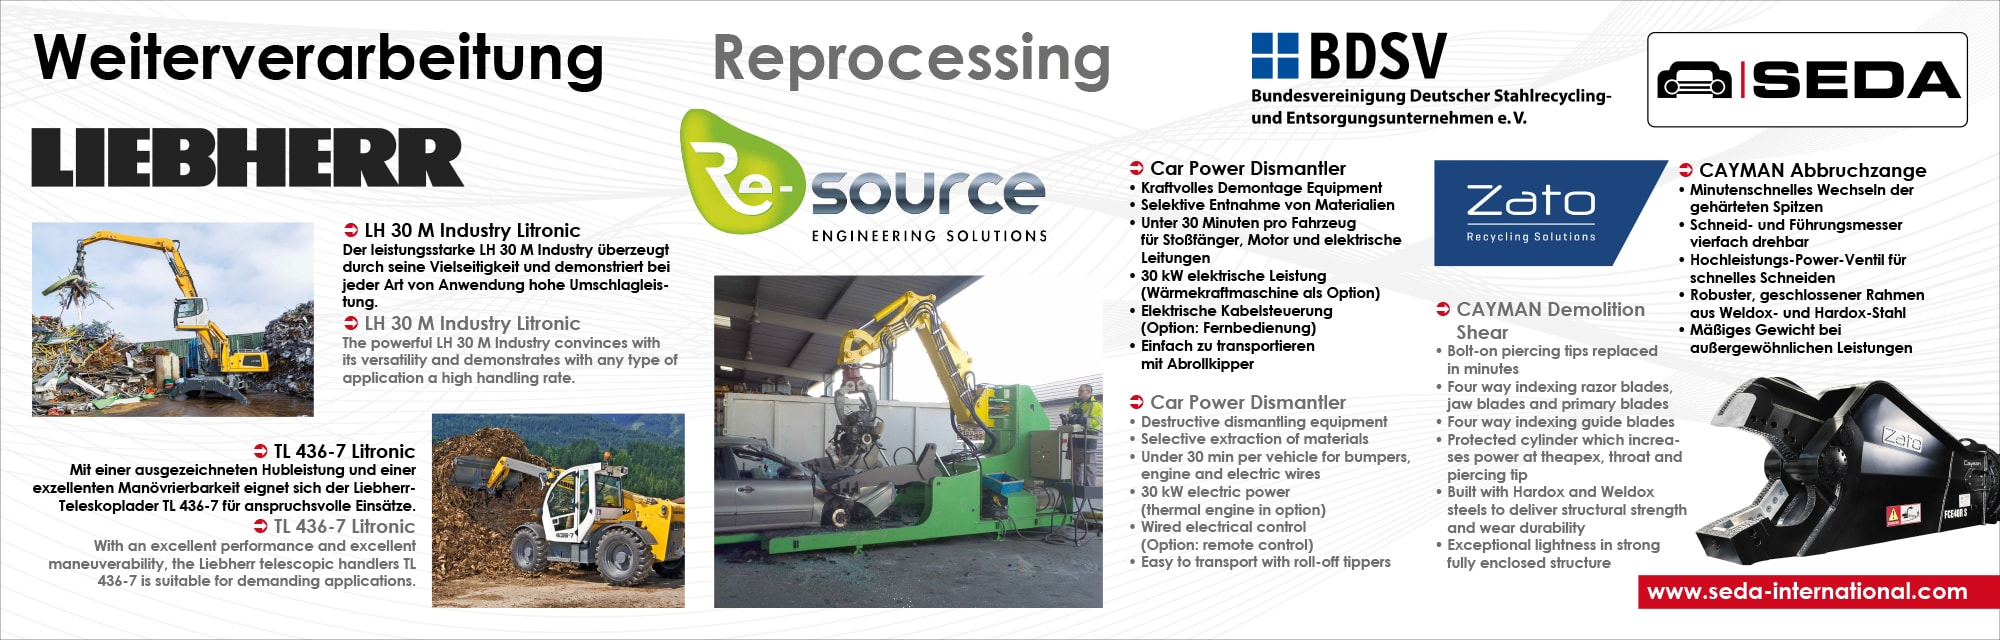 IFAT2016 Station 6 Weiterverarbeitung2 min - SEDA presented car recycling LIVE at IFAT 2016